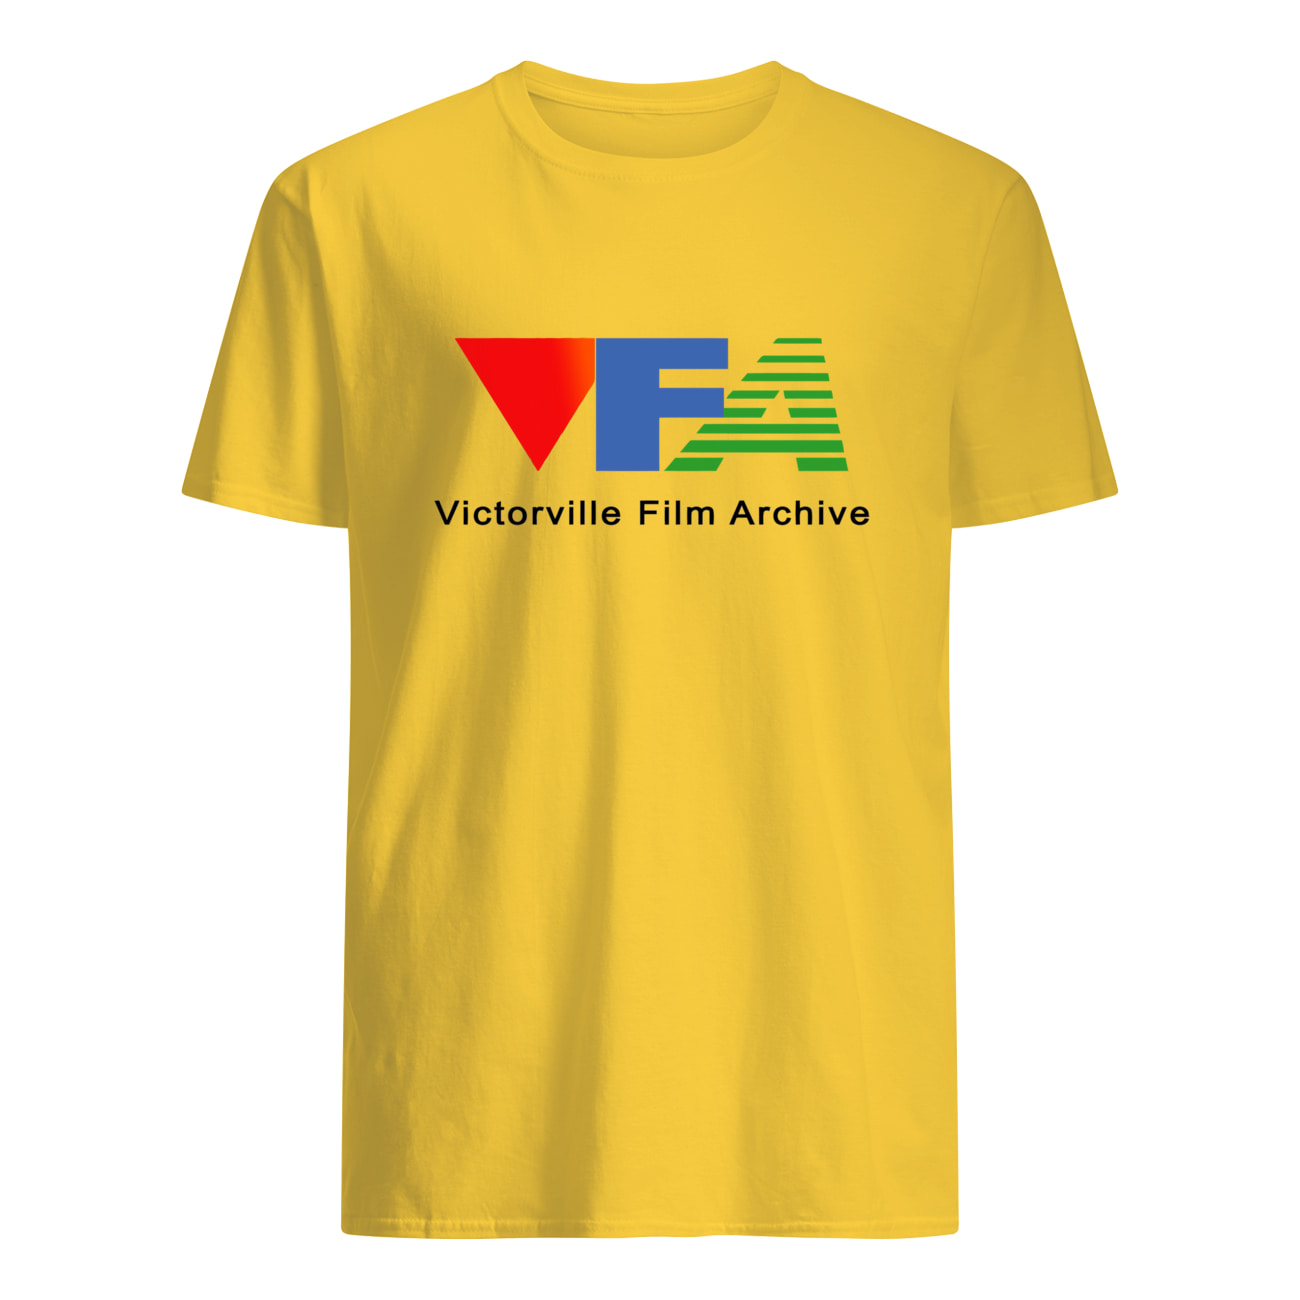 victorville film archive shirt